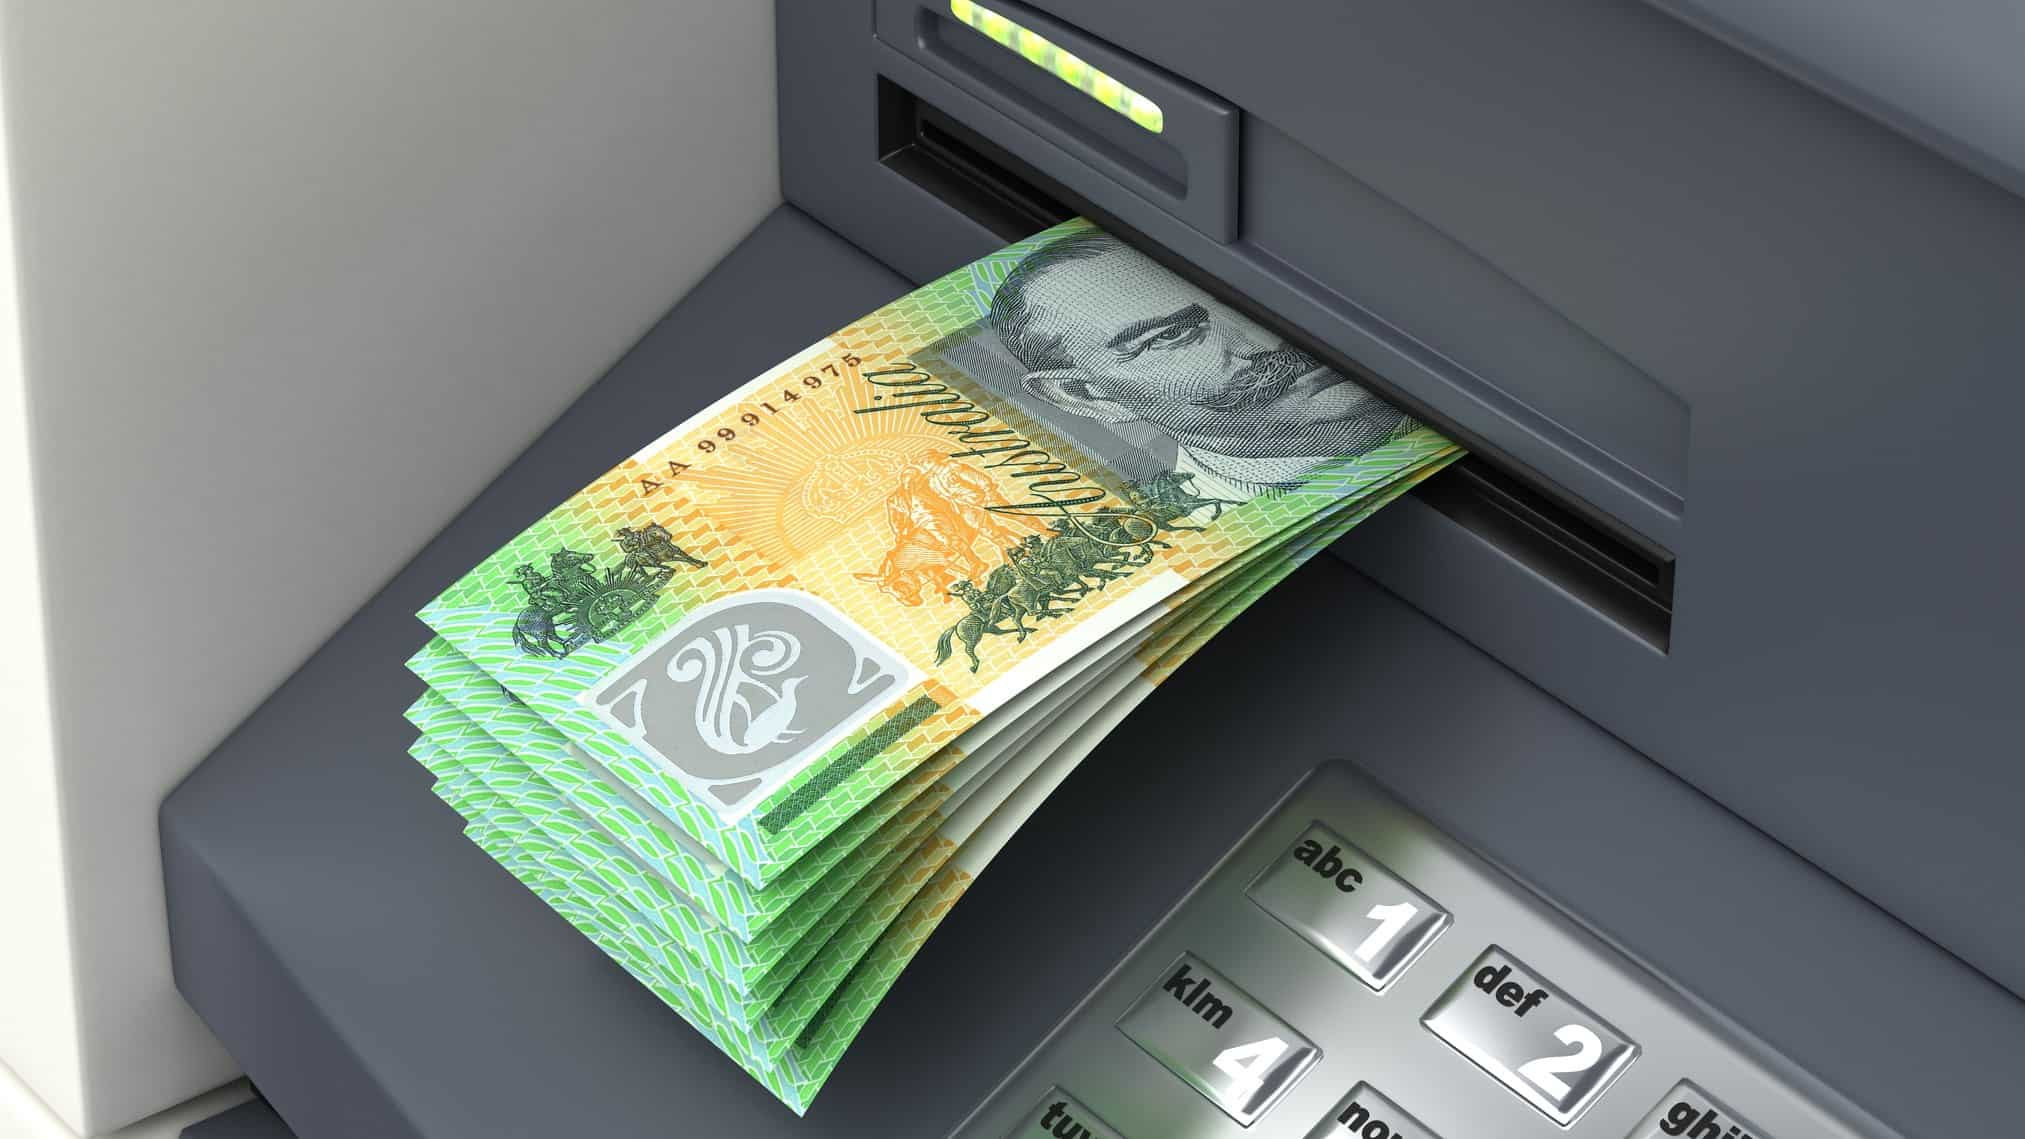 ASX dividend shares represented by ATM delivering wad of $100 notes